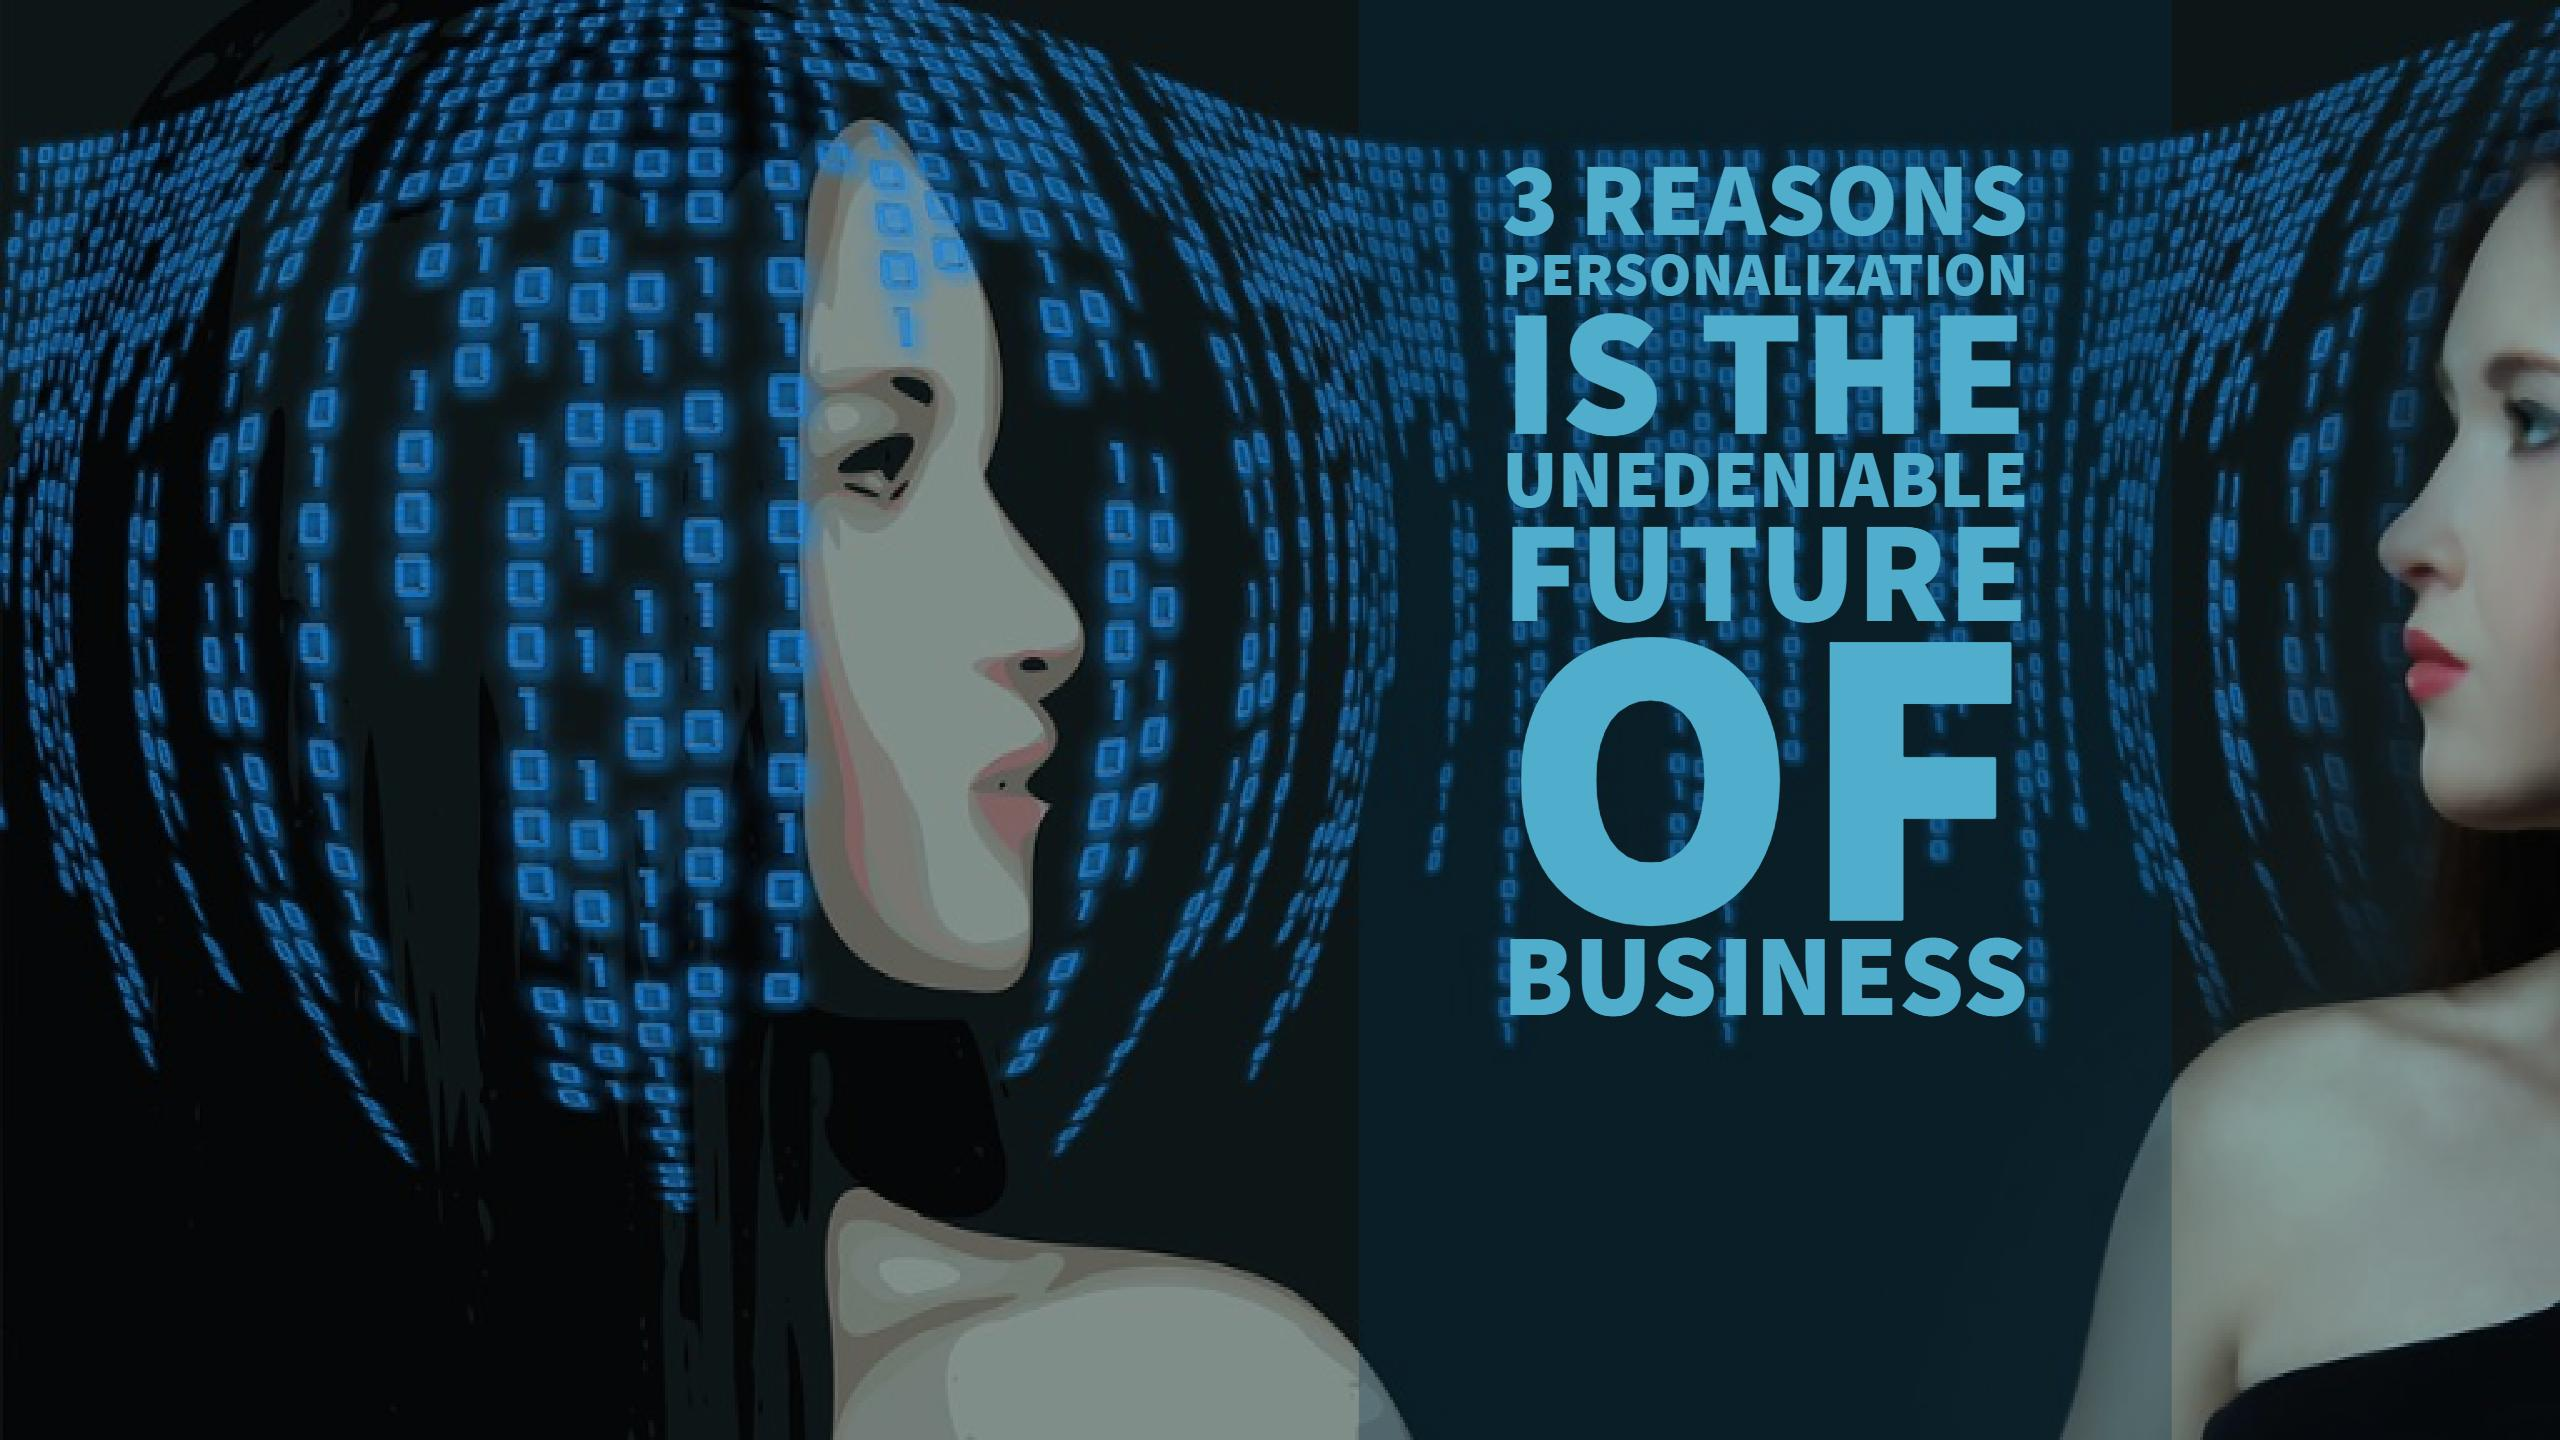 Photo of 3 Reasons Extreme Personalization is the Undeniable Future of Business